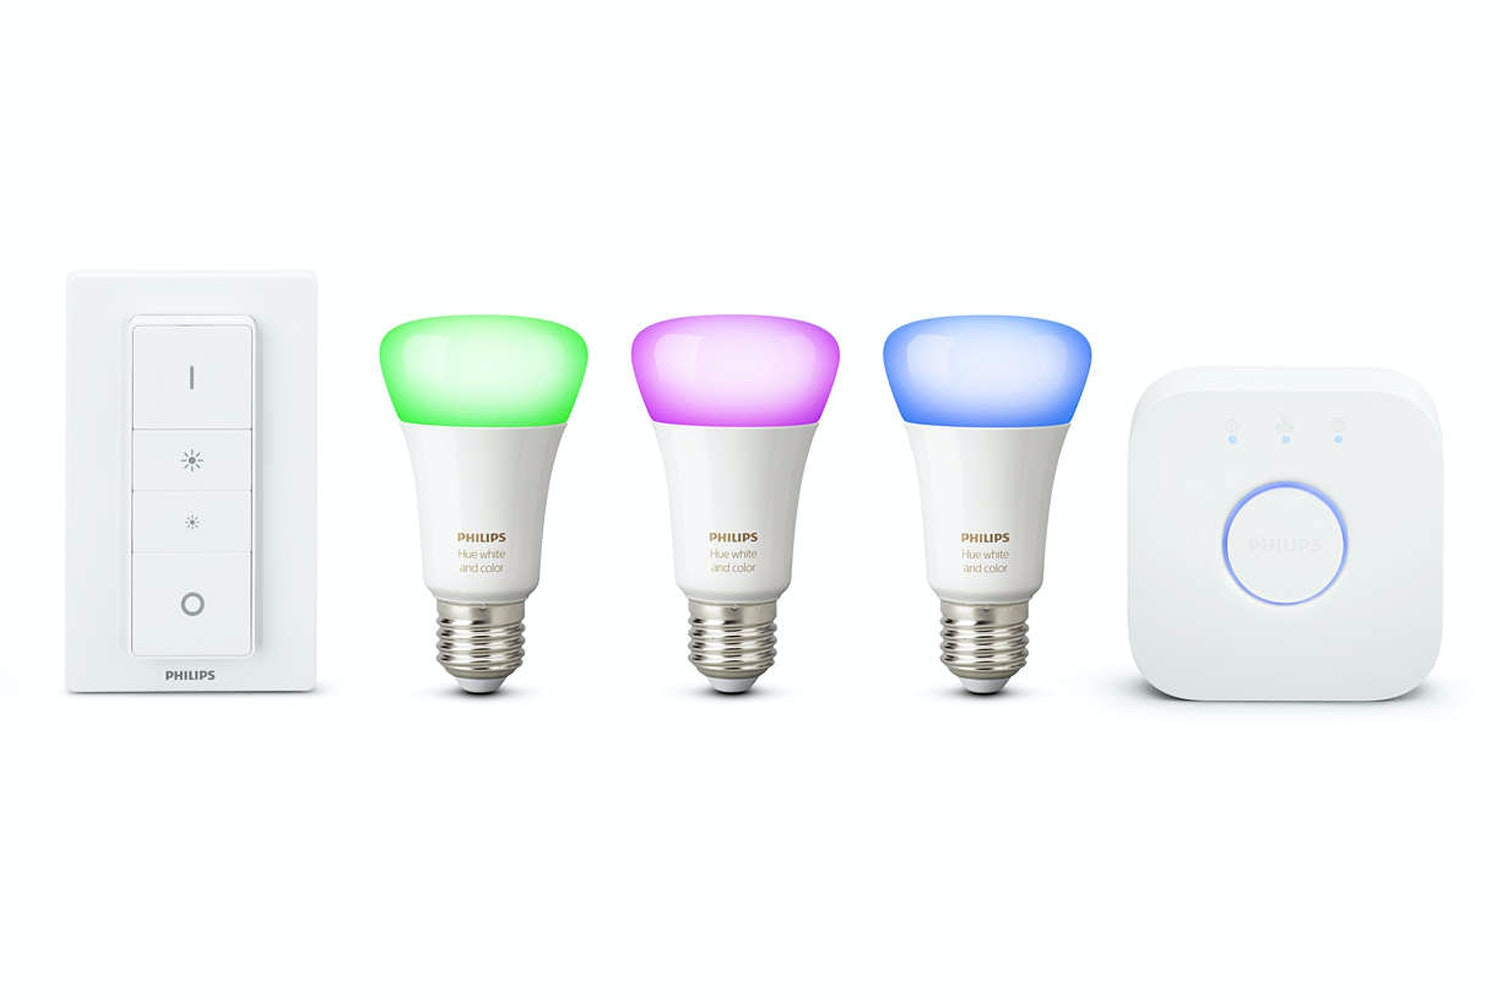 Philips Hue White & Colour Ambiance E27 Starter Kit